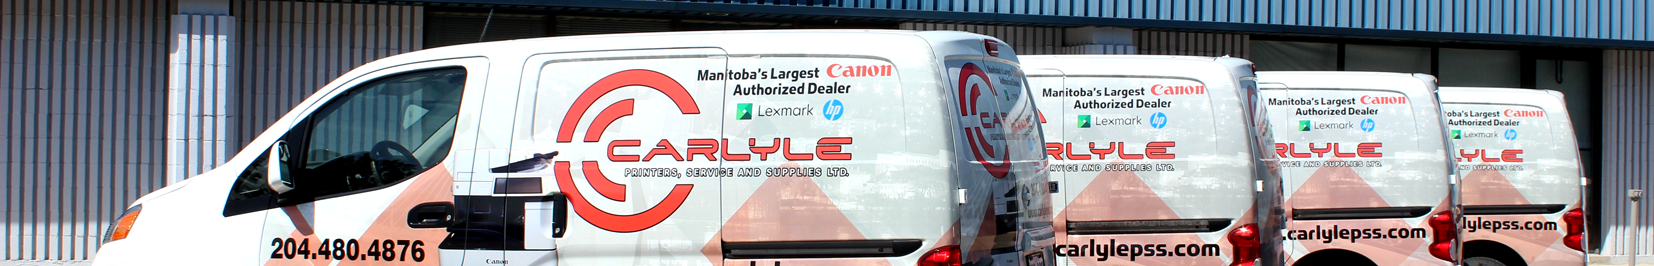 Carlyle's service department fleet of vehicles in Winnipeg, Manitoba